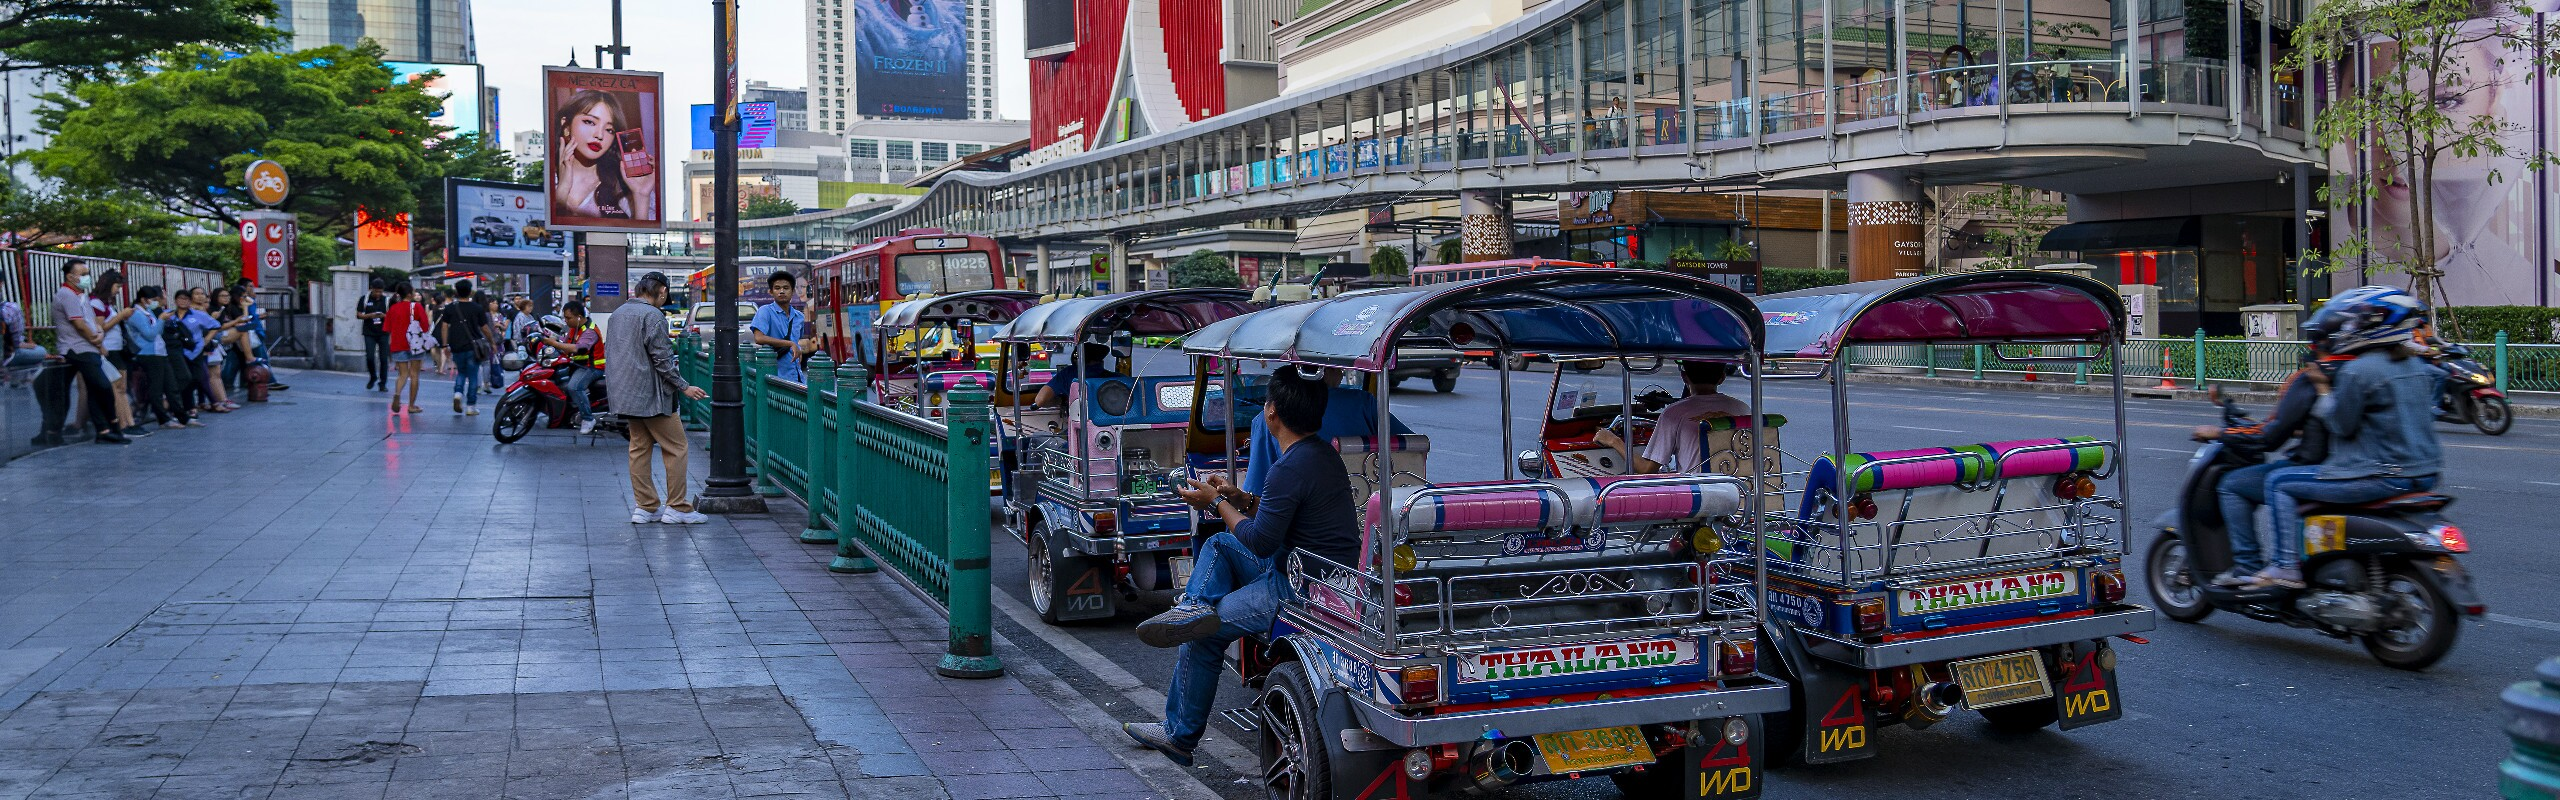 All You Need to Know about Tuk-Tuks in Thailand